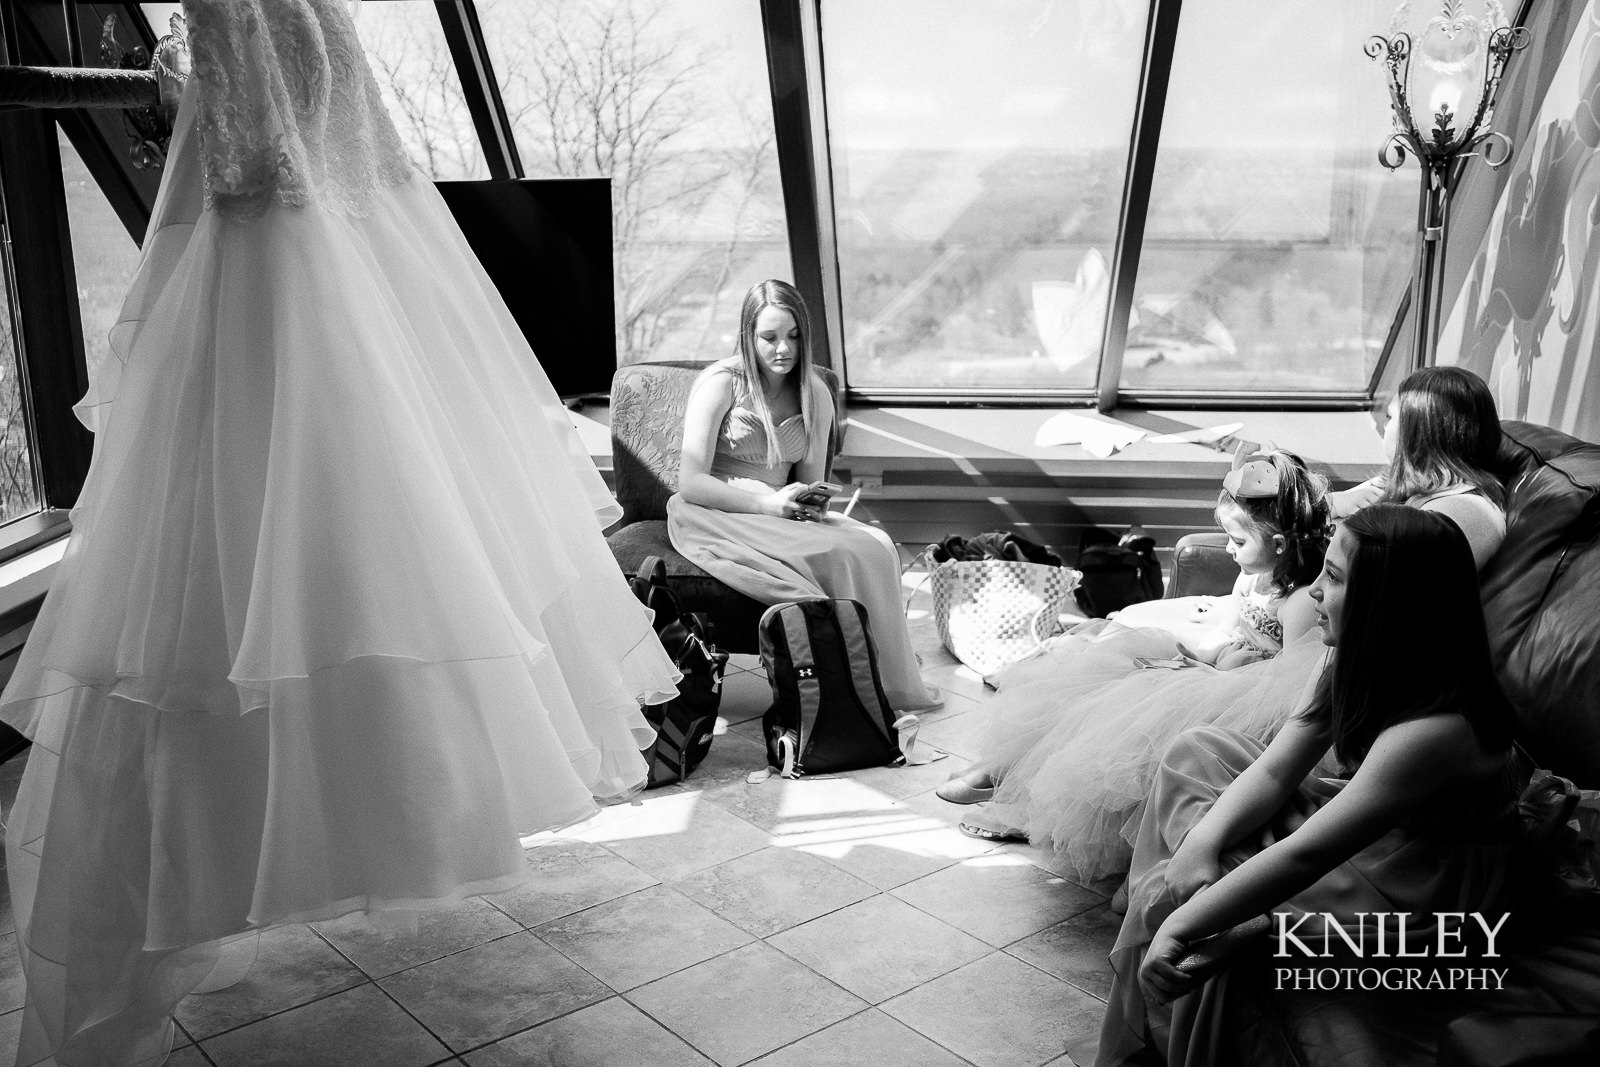 006 - Woodcliff Hotel - Rochester NY wedding photo - Kniley Photography.jpg